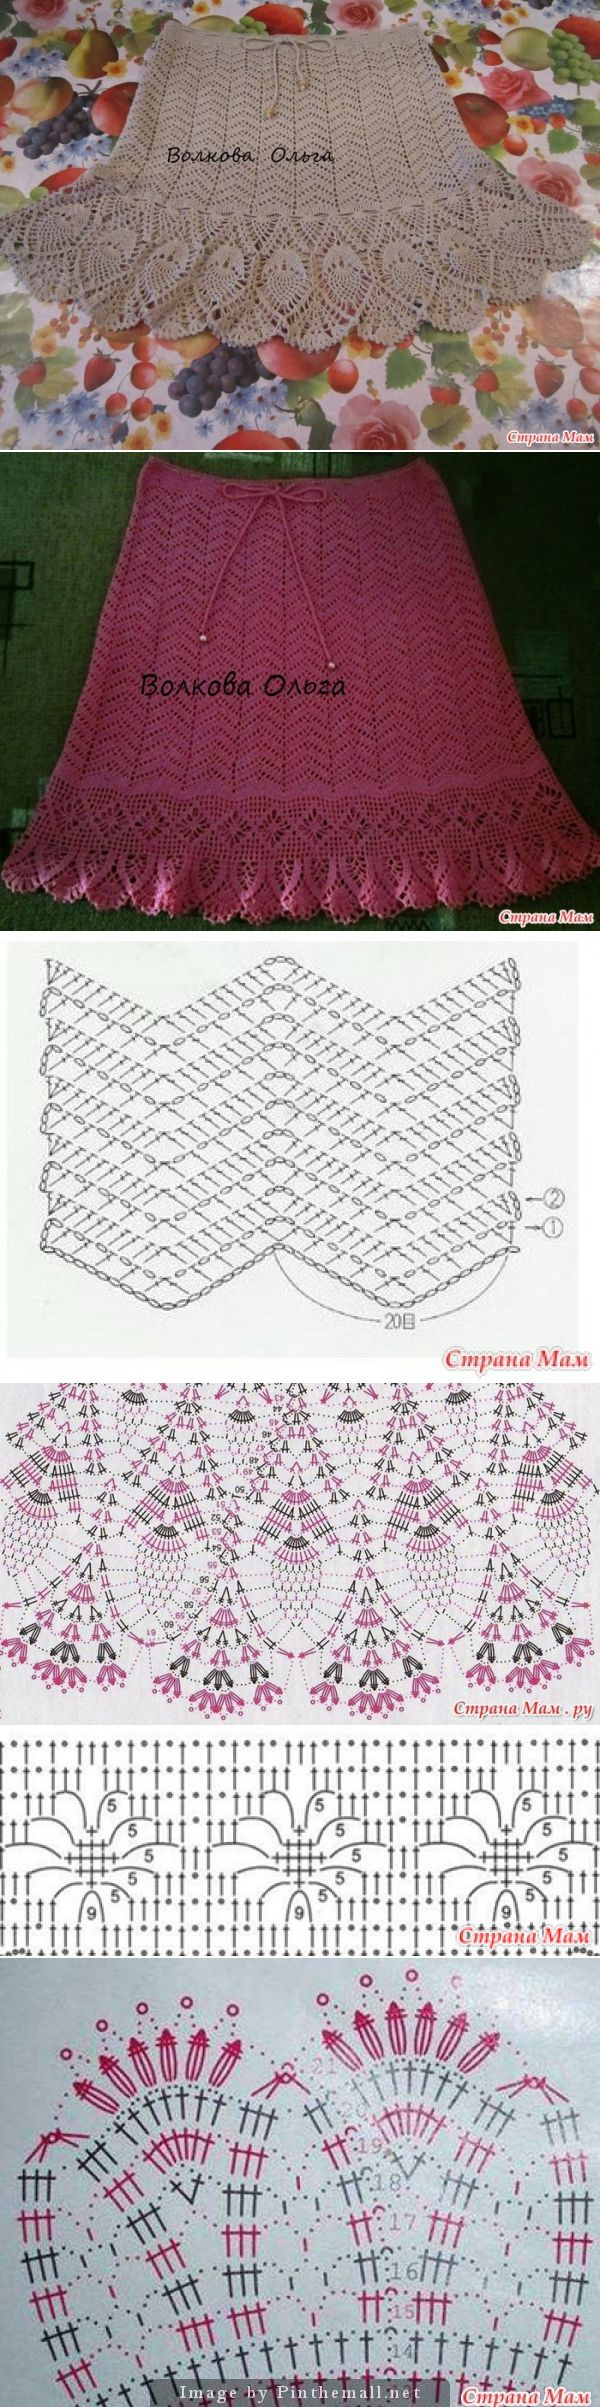 Crochet skirt chart pattern